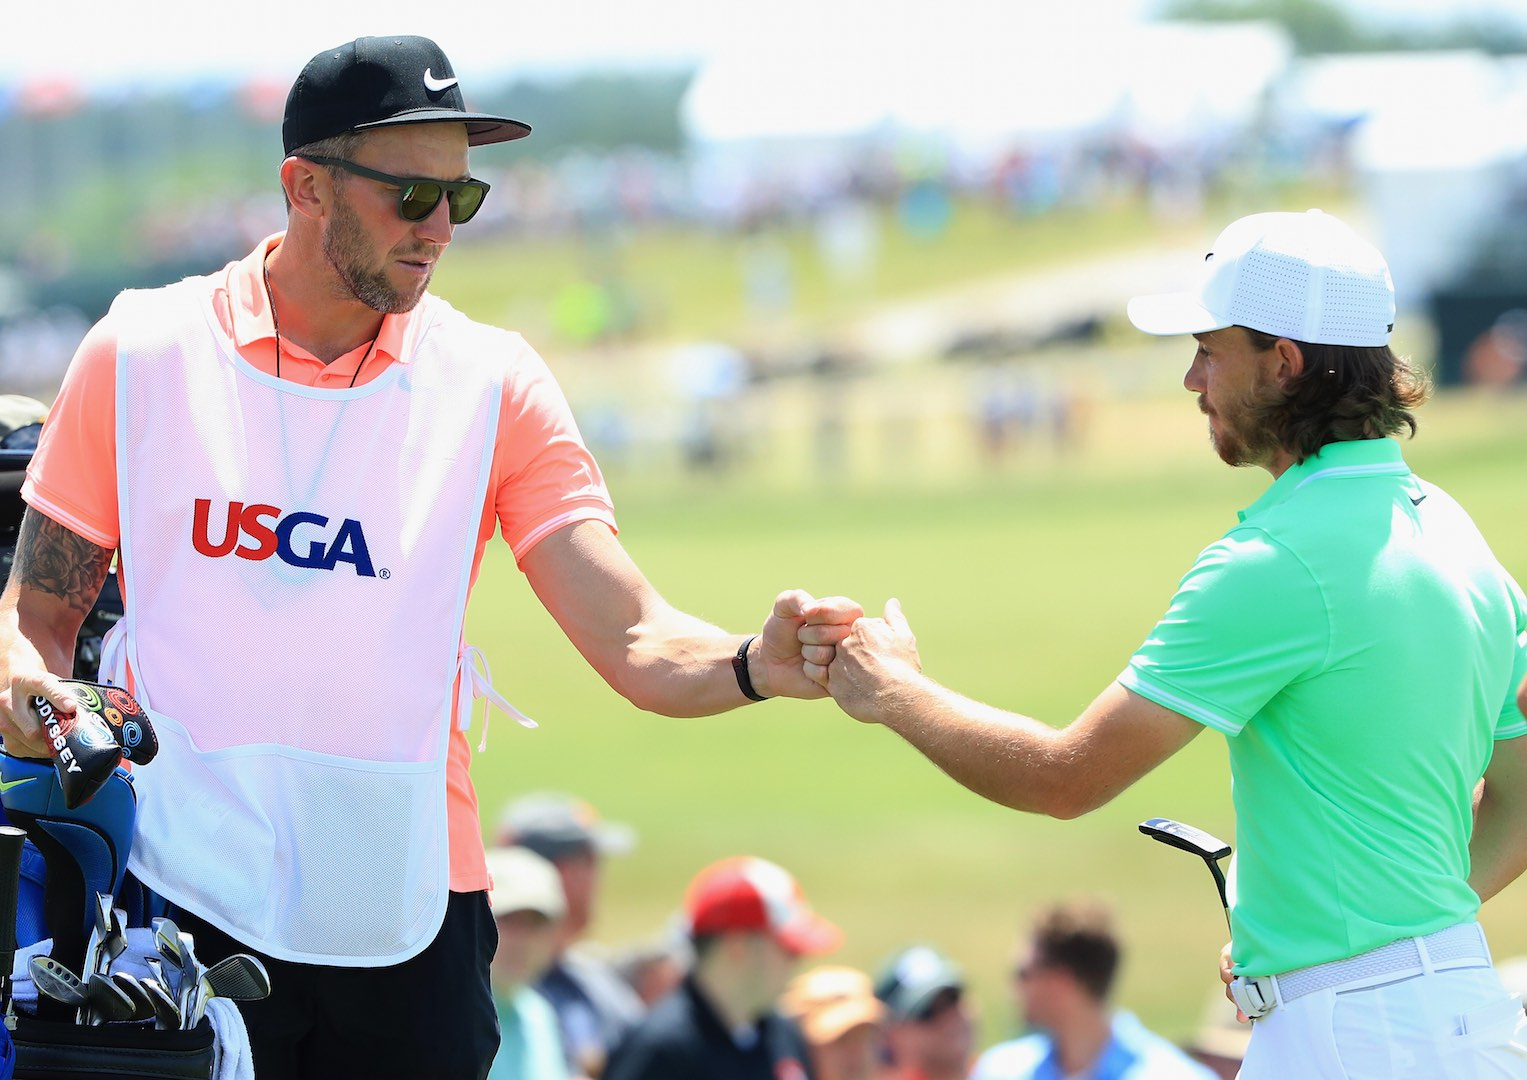 Rickie Fowler equals US Open record